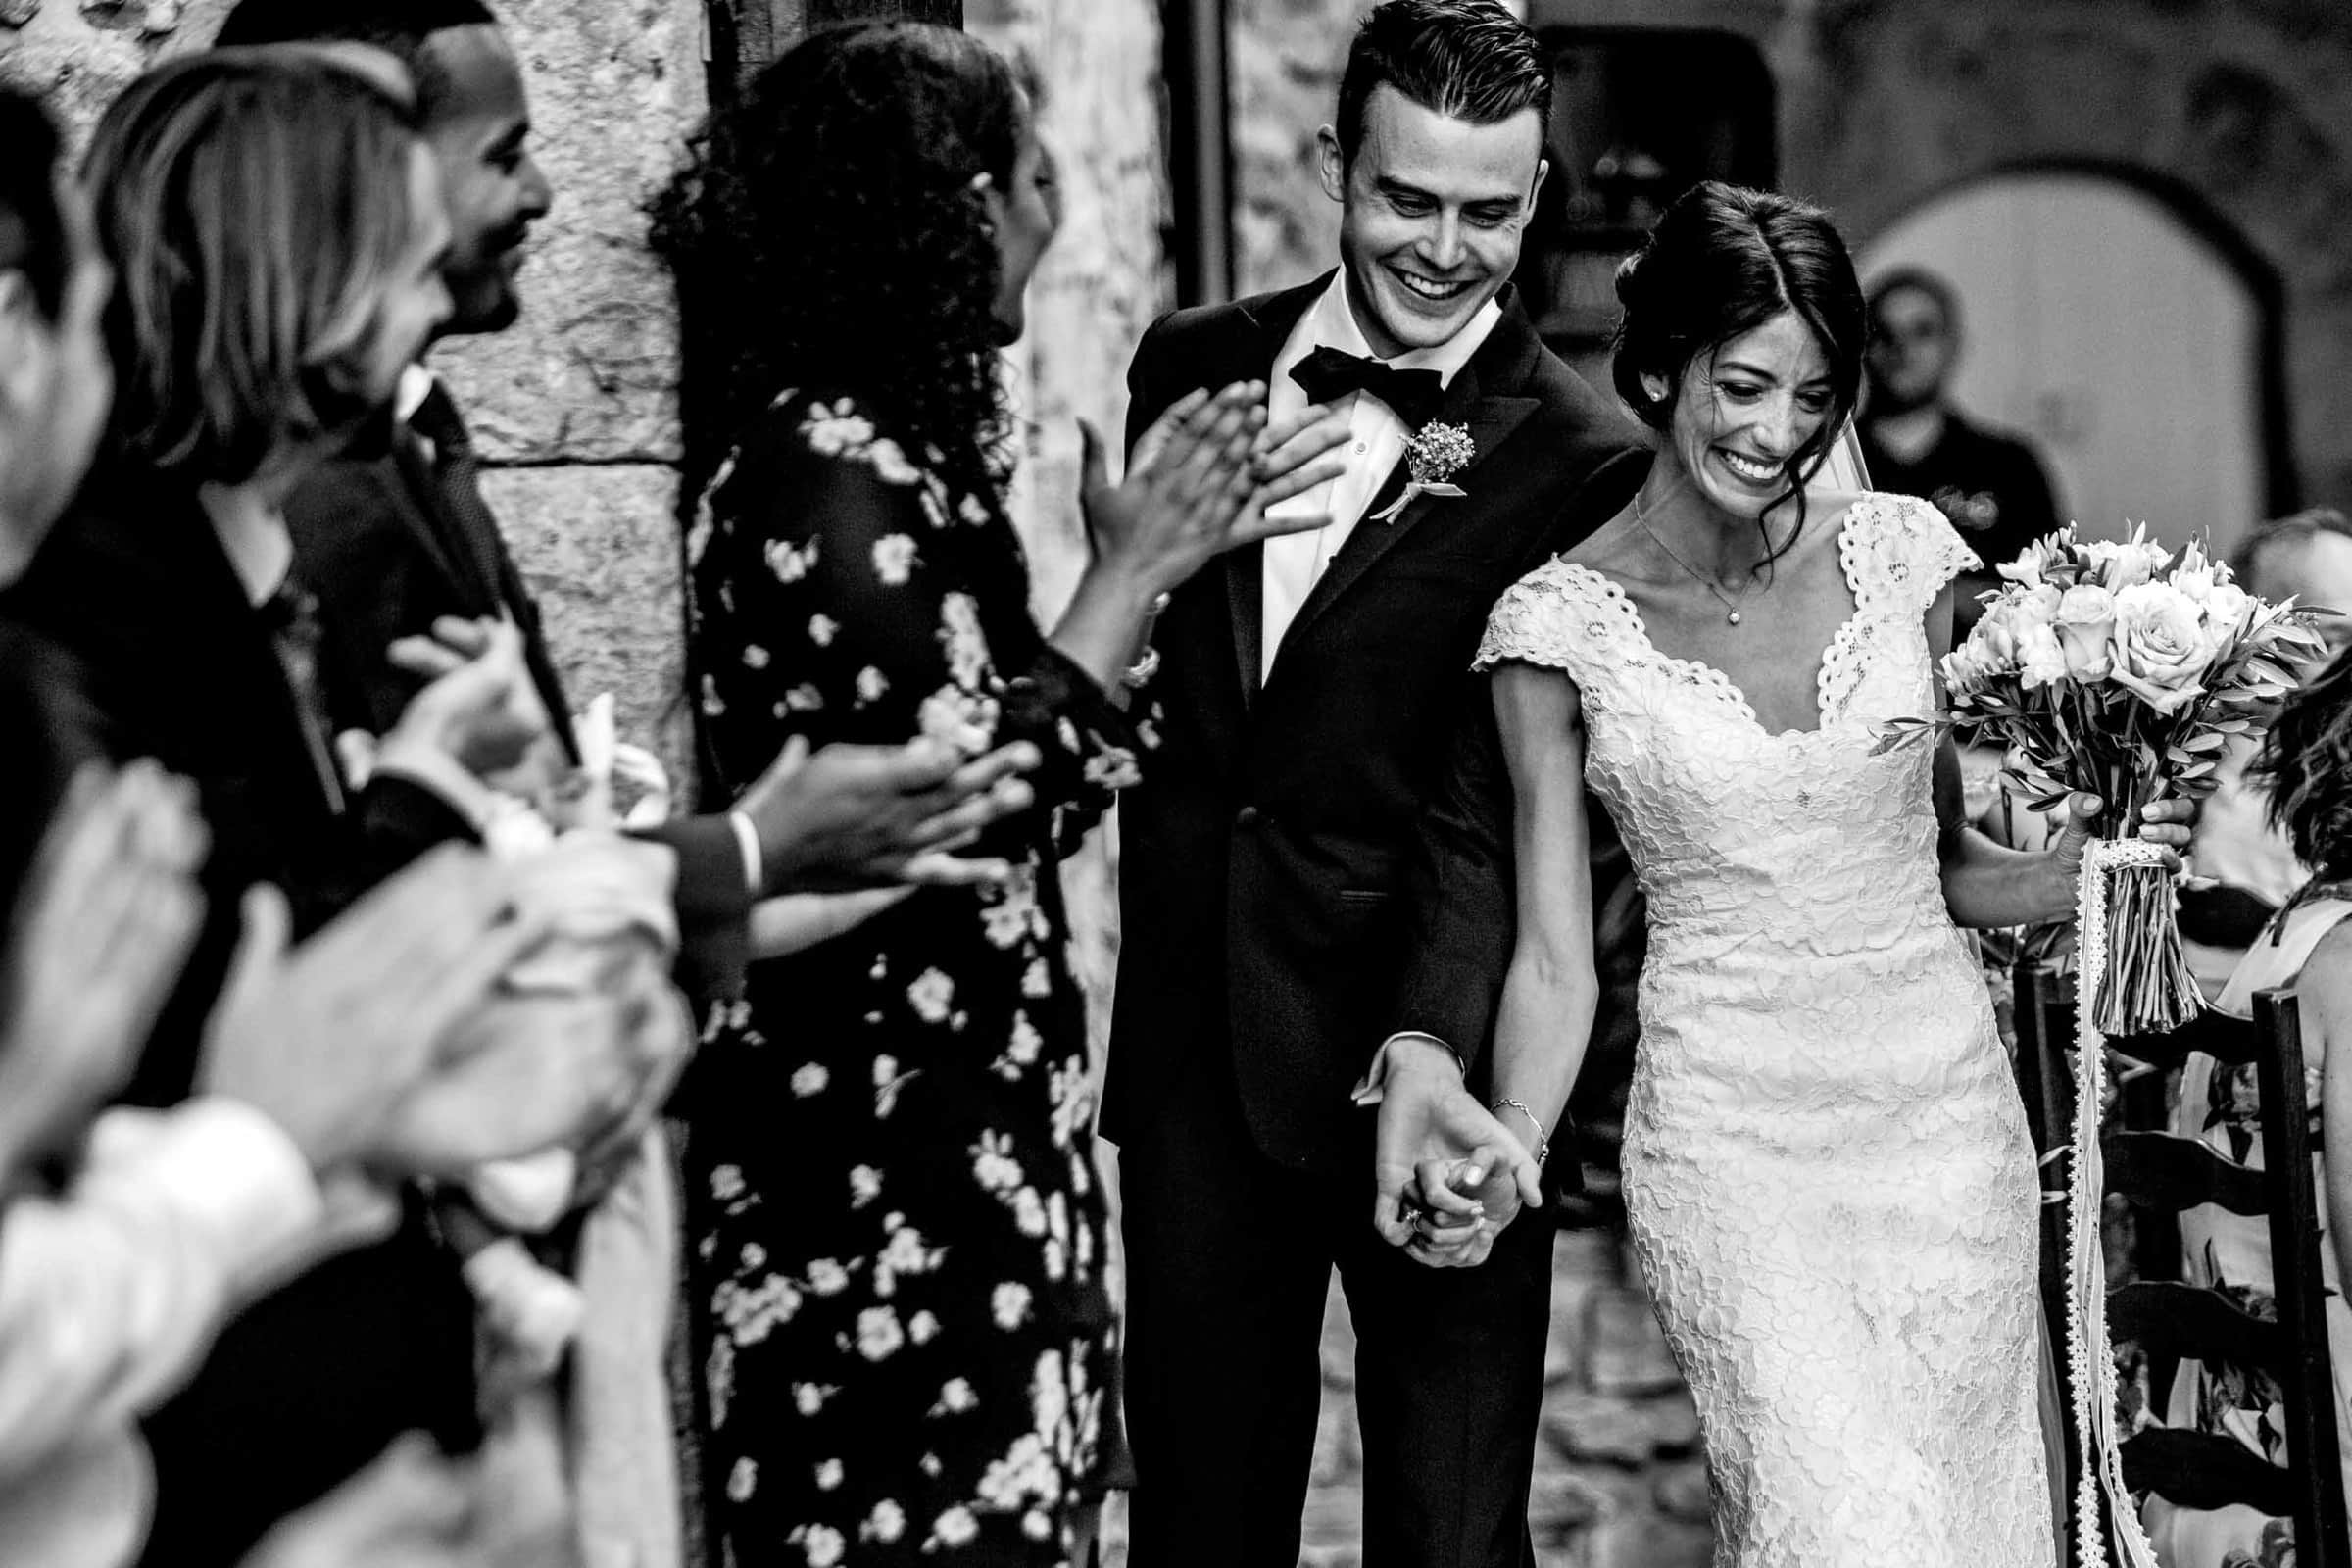 Ecstatic moment between bride and groom during a gorgeous Chateau Zen wedding ceremony in the south of france